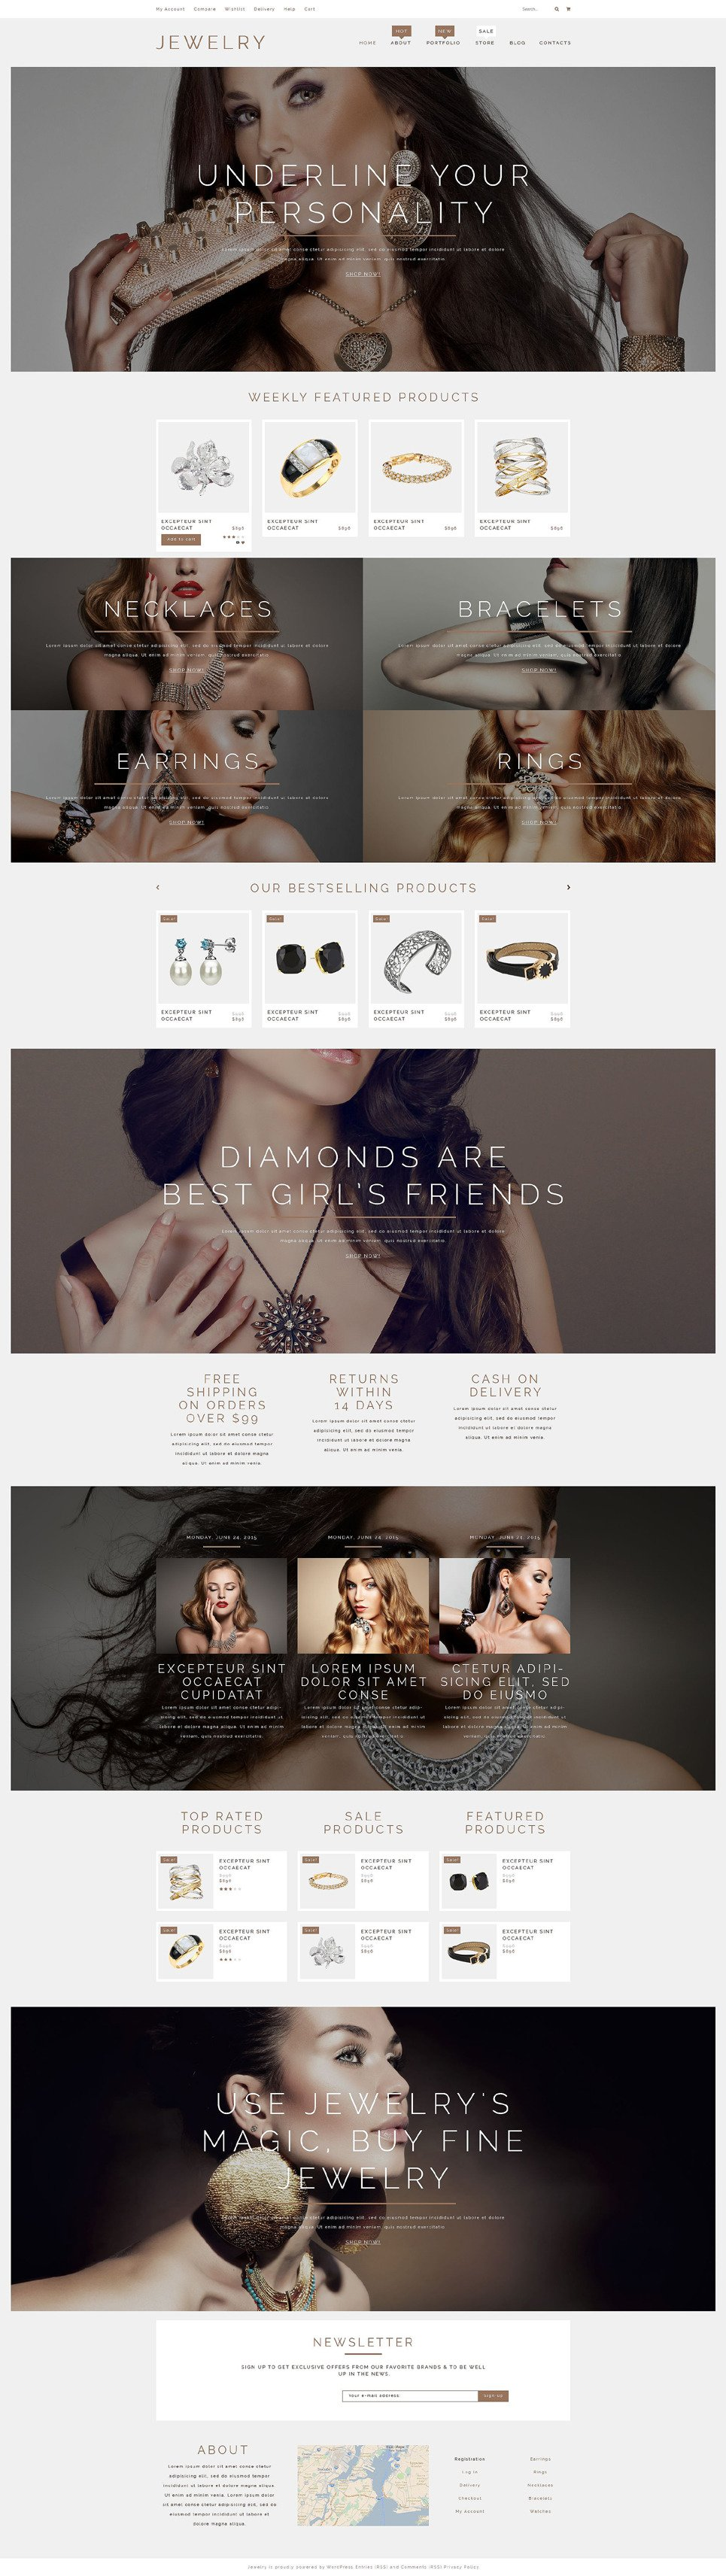 Jewelry Products WooCommerce Theme New Screenshots BIG